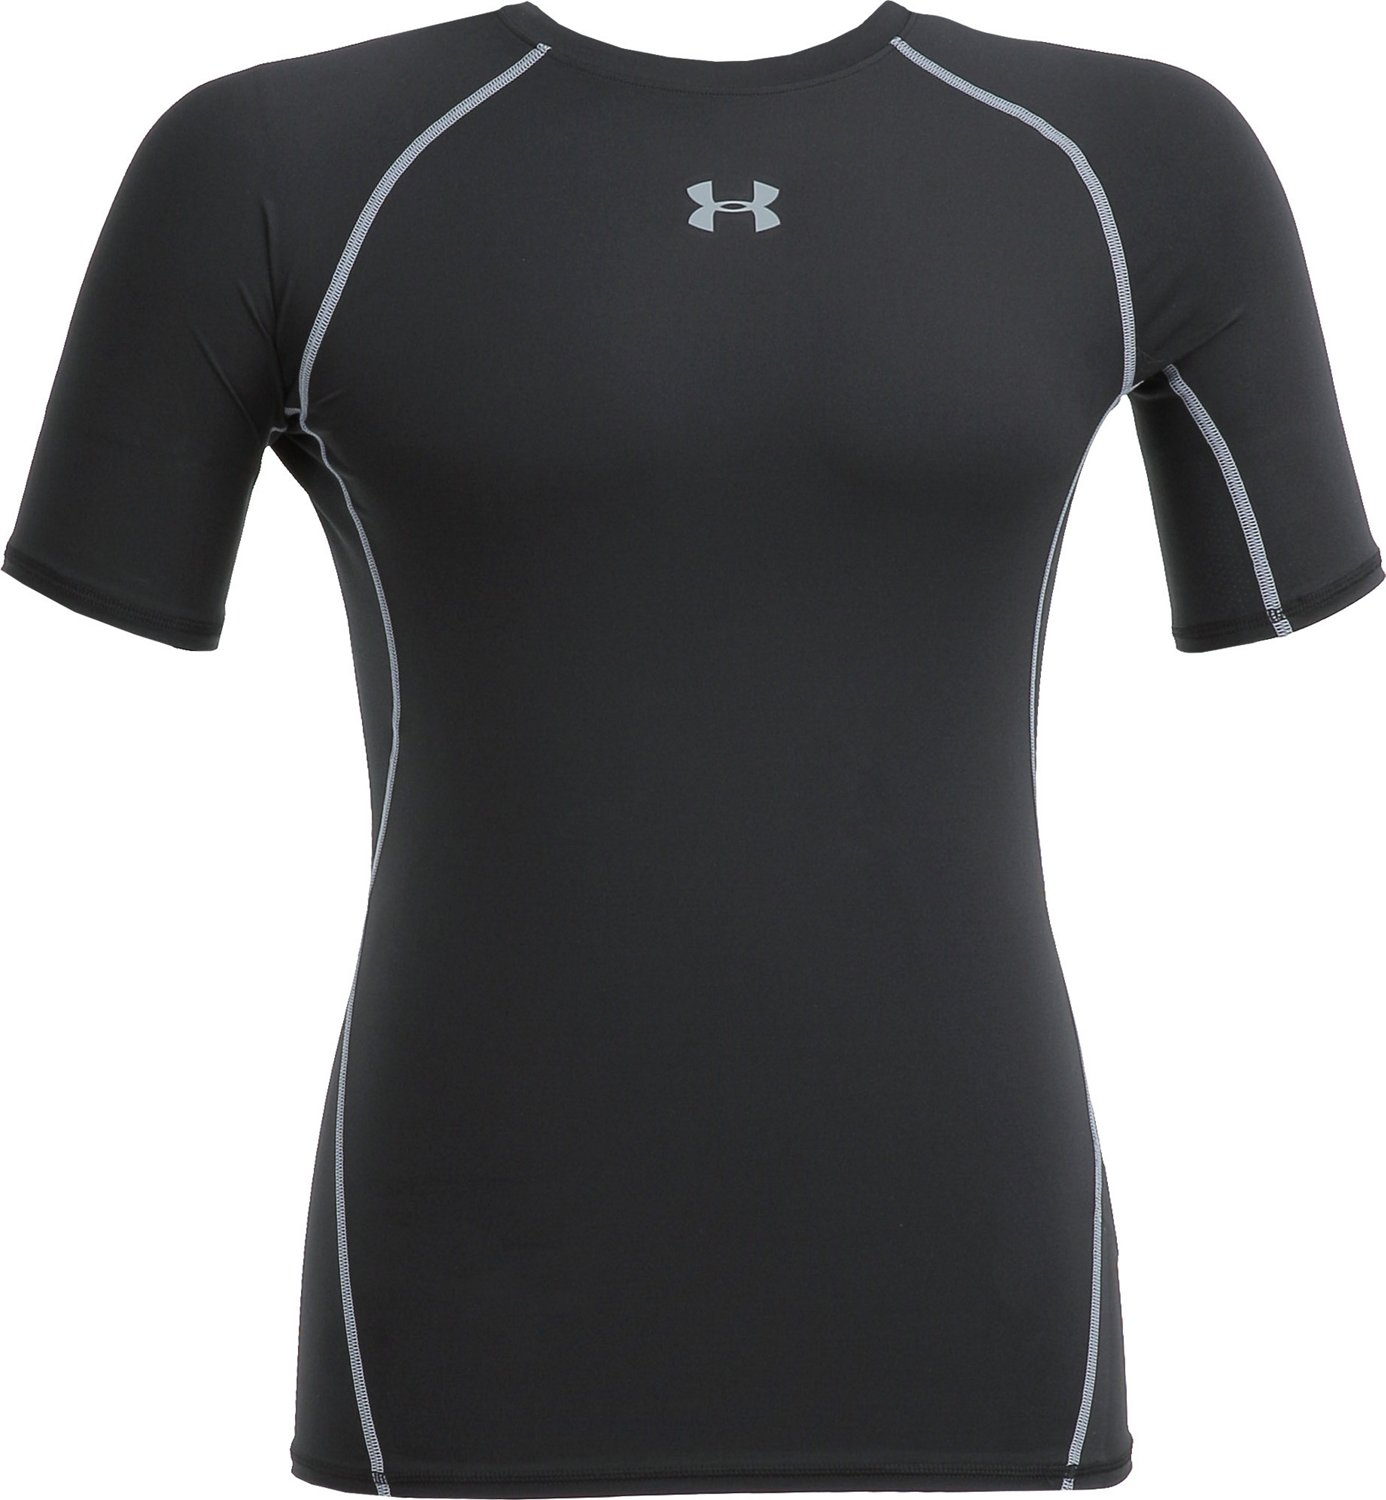 e7a480c7775 Under Armour Men s HeatGear Armour Short Sleeve T-shirt